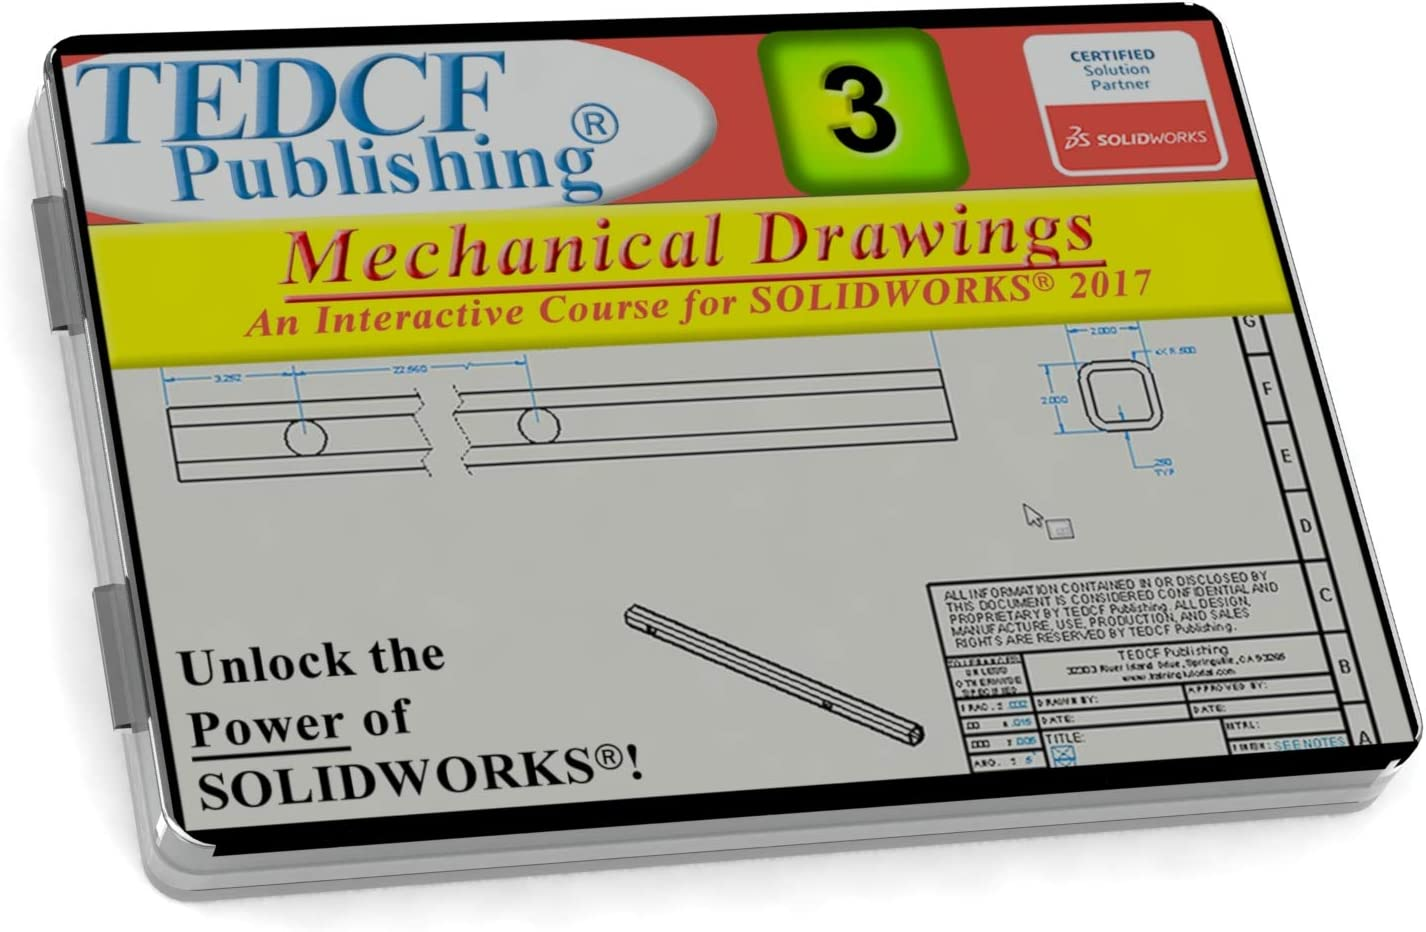 SOLIDWORKS 2017: Easy-to-use Mechanical Drawings Training Cours Video Ultra-Cheap Deals –